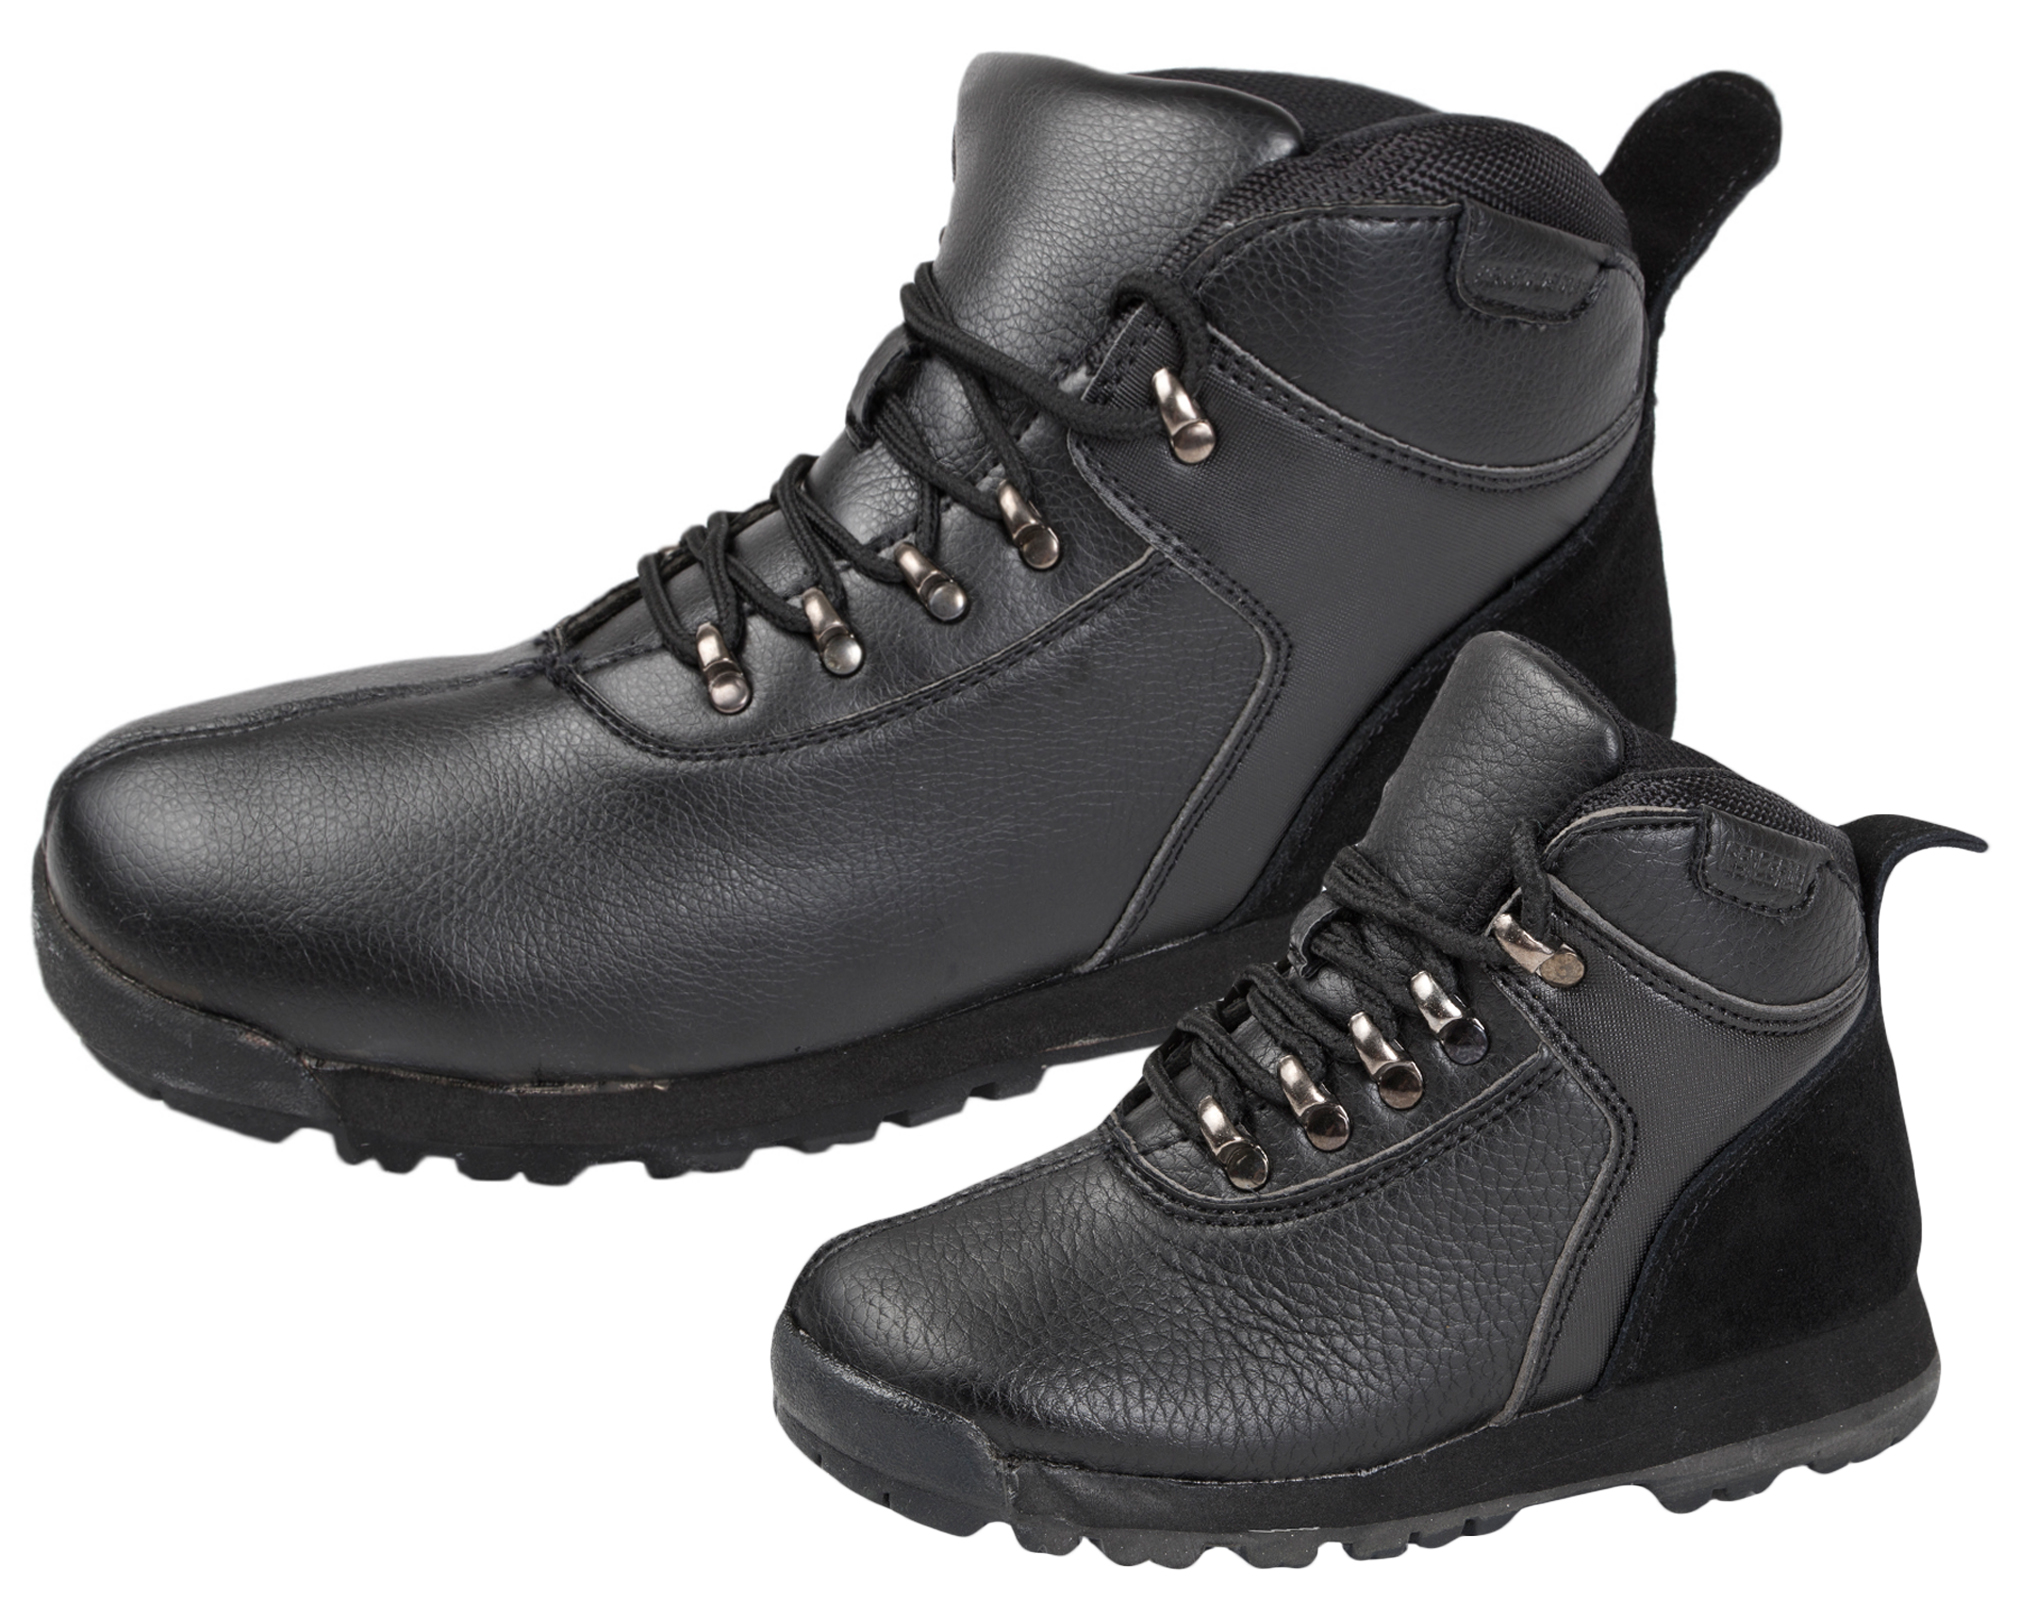 7a8facbe59665 MENS BOYS FAUX LEATHER LACEUP ANKLE WALKING HIKING BOOTS SCHOOL SHOES BLACK  7-12